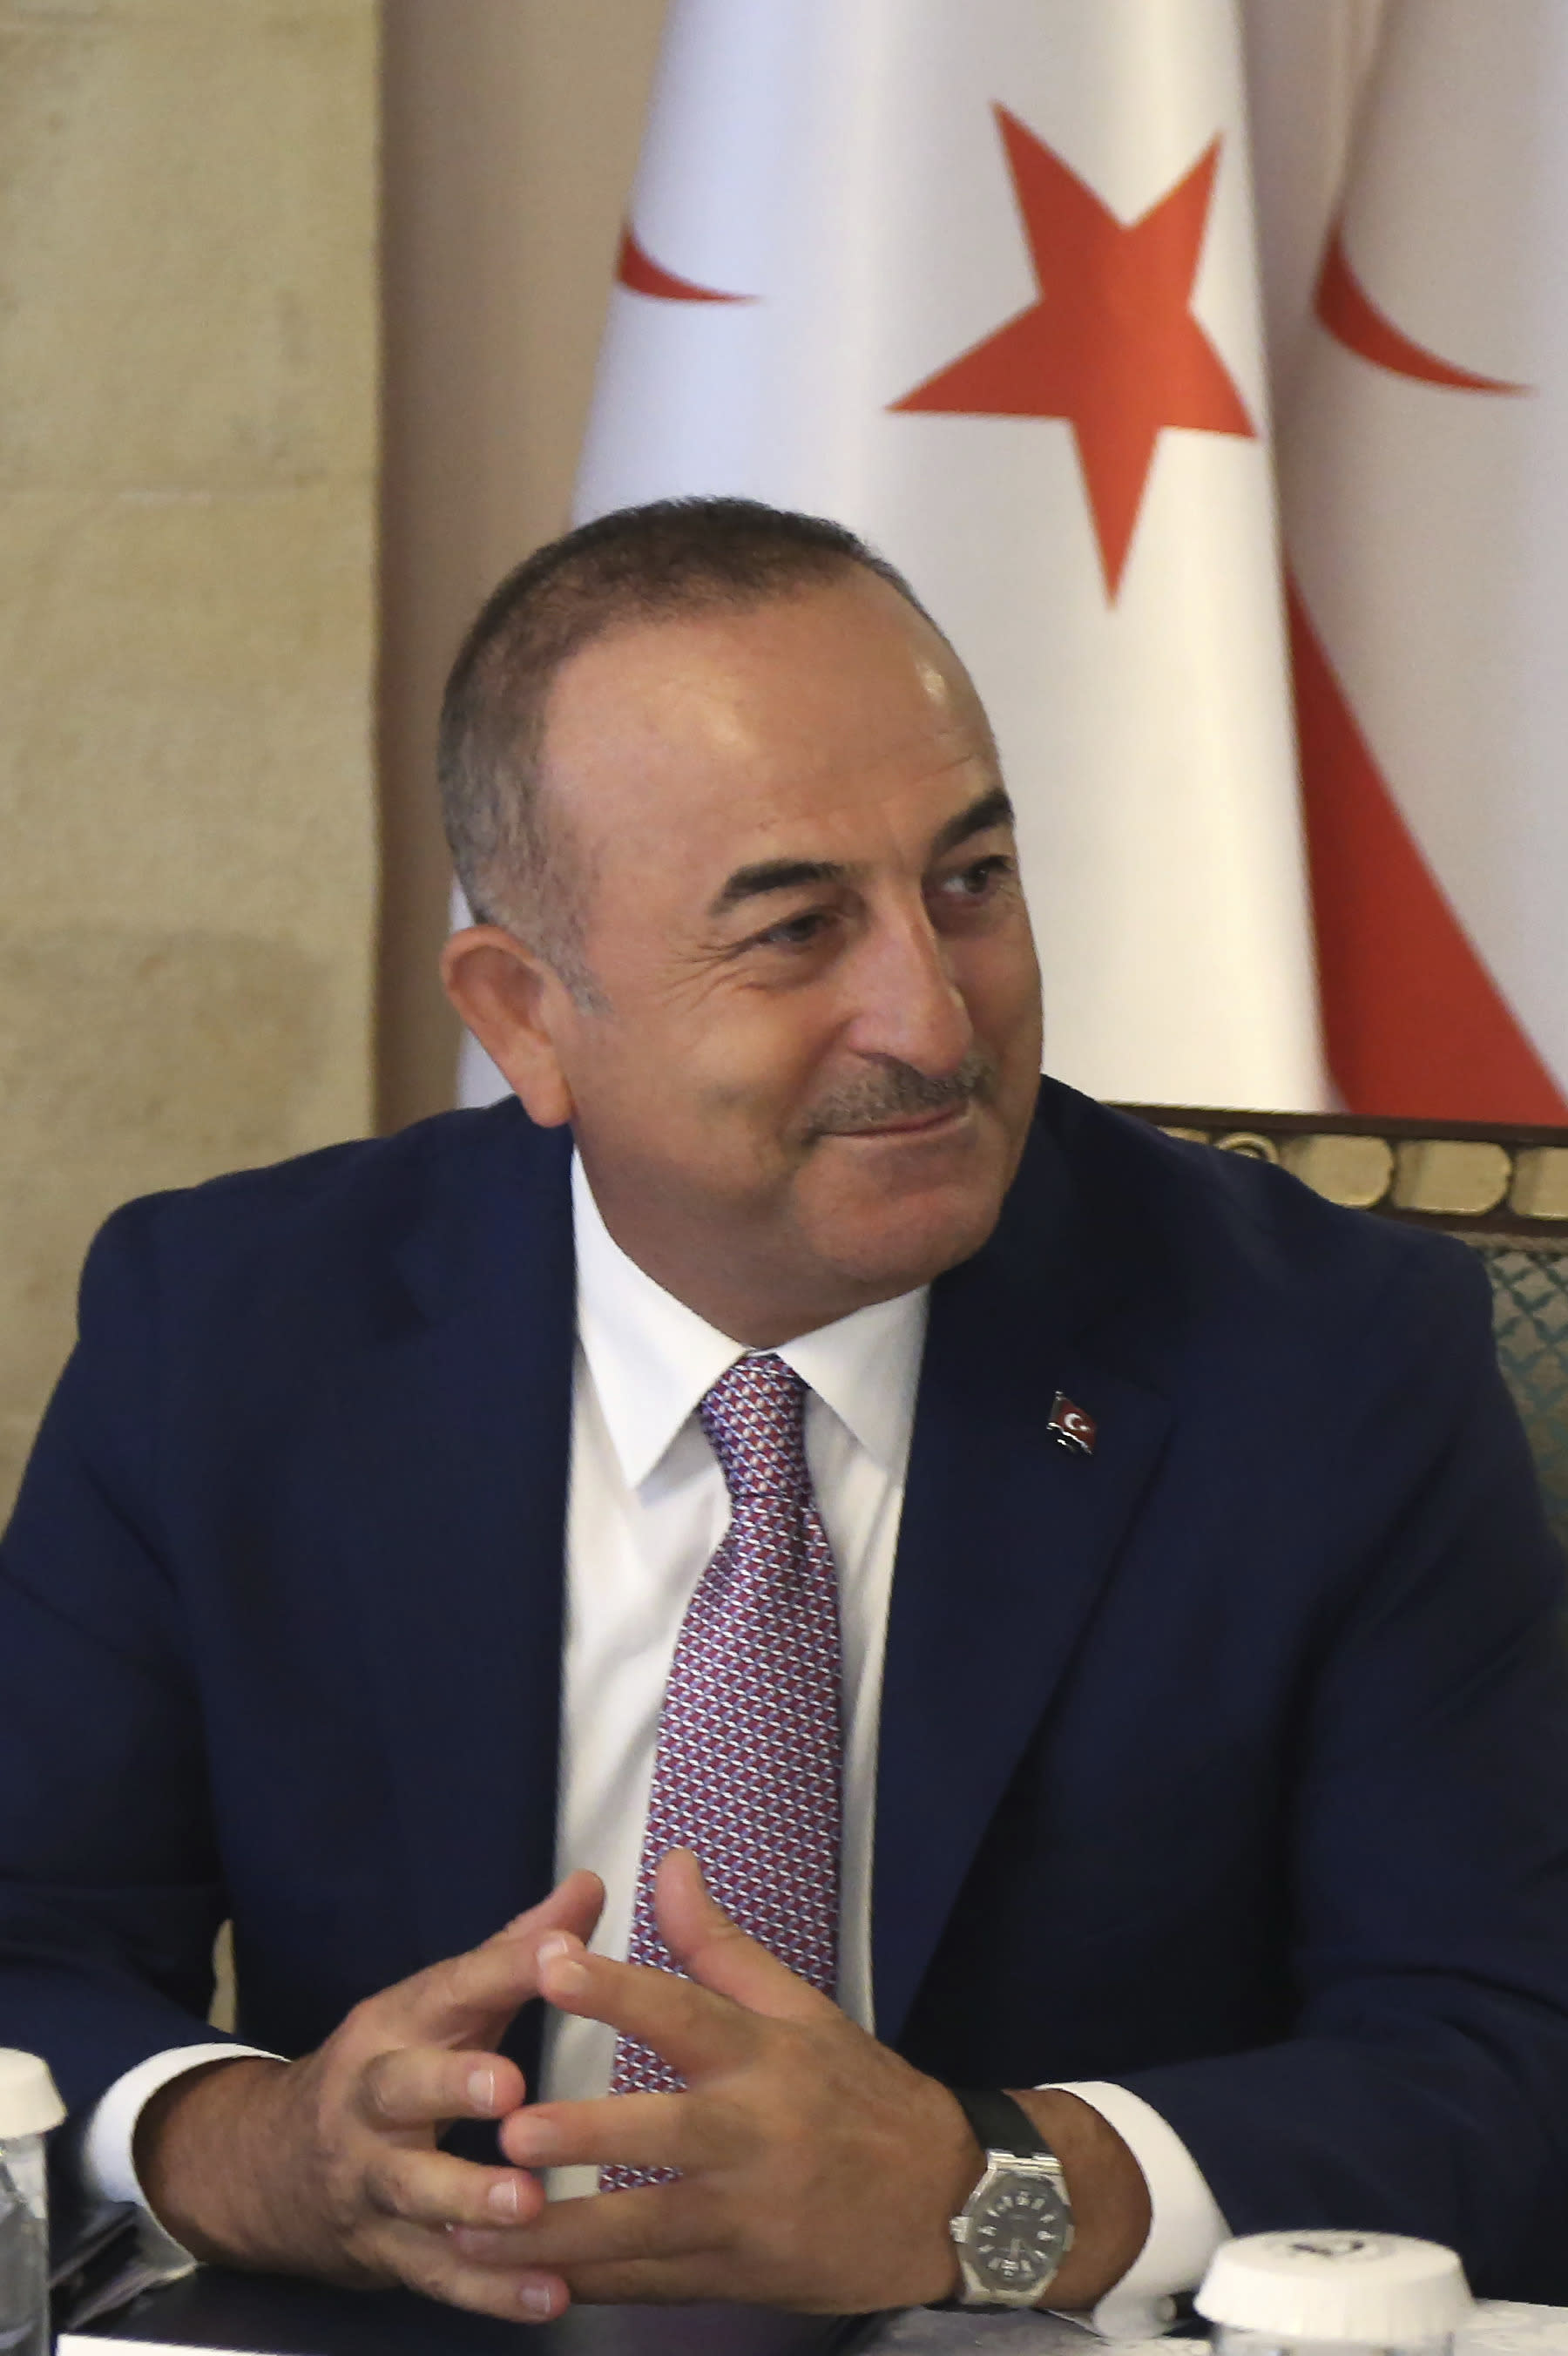 Turkish Foreign Minister Mevlut Cavusoglu talks during a meeting with Turkish Cypriot leader Mustafa Akinci in the Turkish occupied area in the northern part of divided capital Nicosia, Cyprus, Monday, Sept. 9, 2019. Cavusoglu is in the northern part of divided Cyprus for three-day visit. (AP Photo/Petros Karadjias)